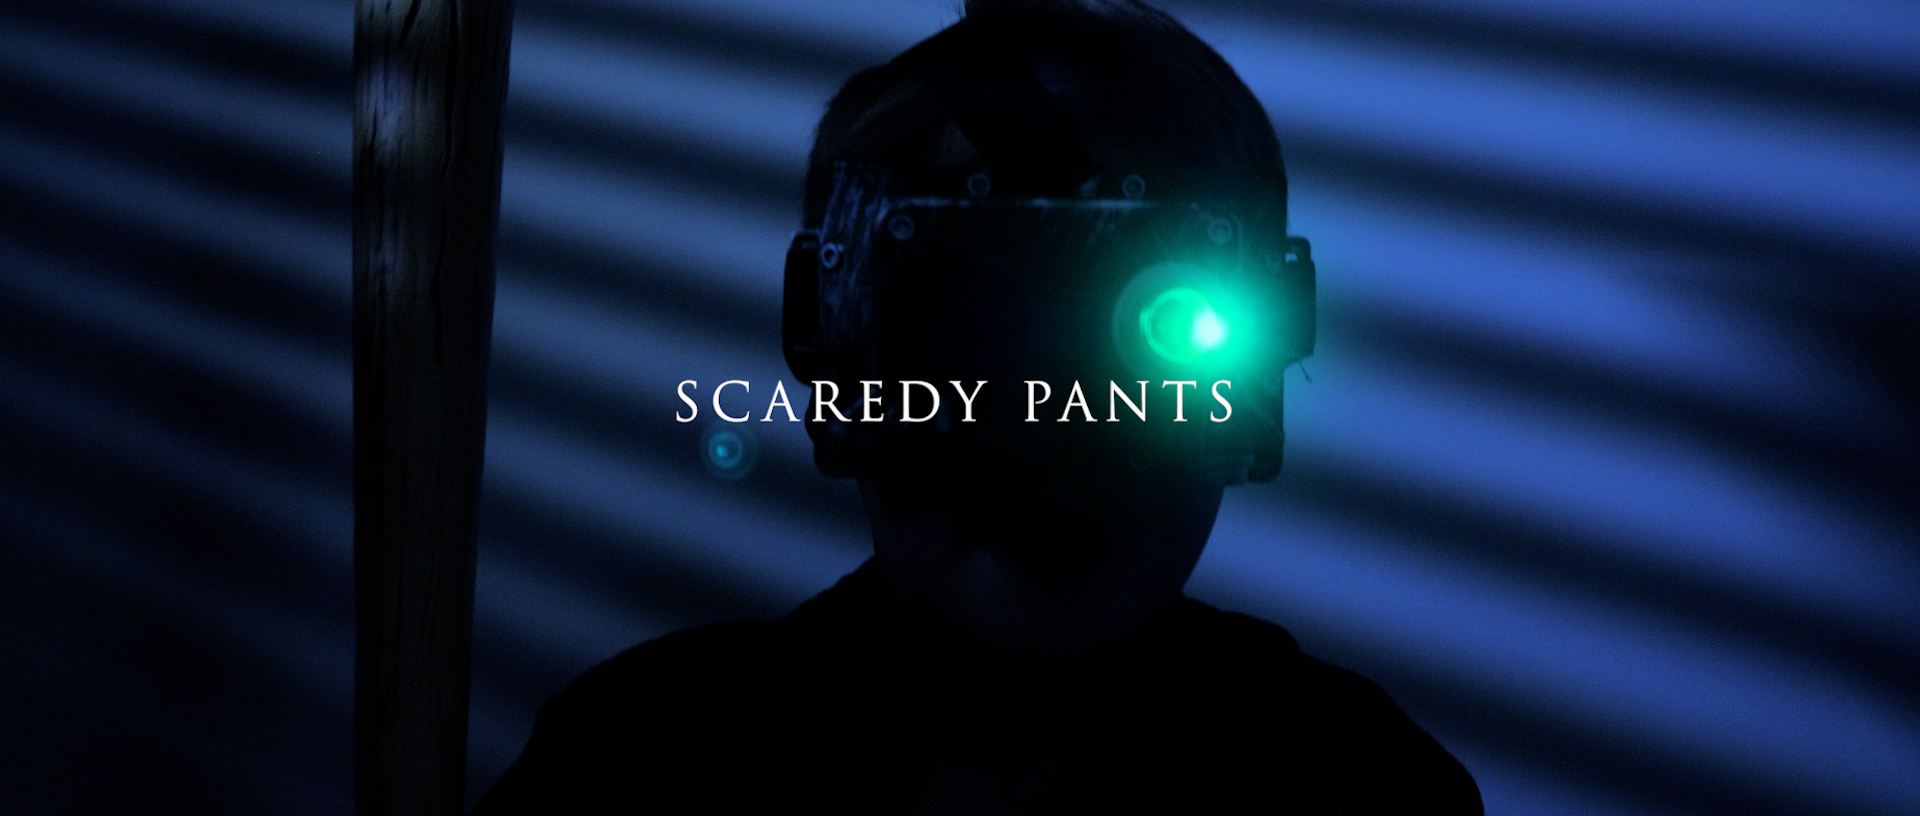 Scaredy Pants - My RODE Reel 2020